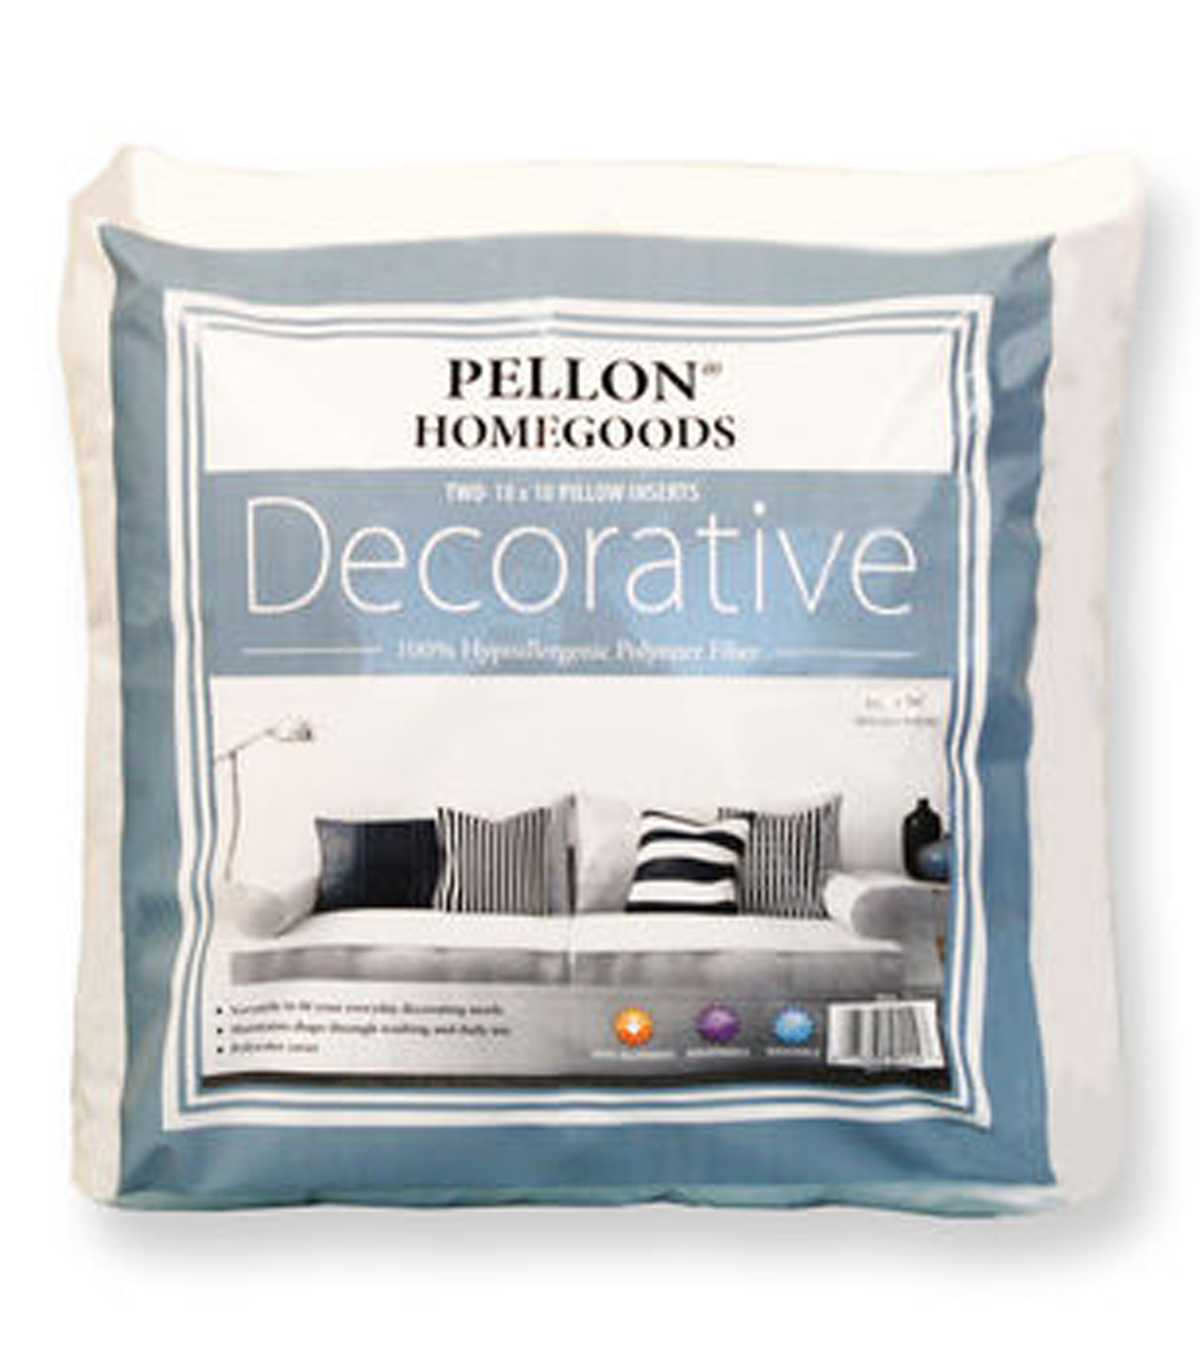 Decorative Twin Pack 18x18, 18x18 Twin Pack Pillow